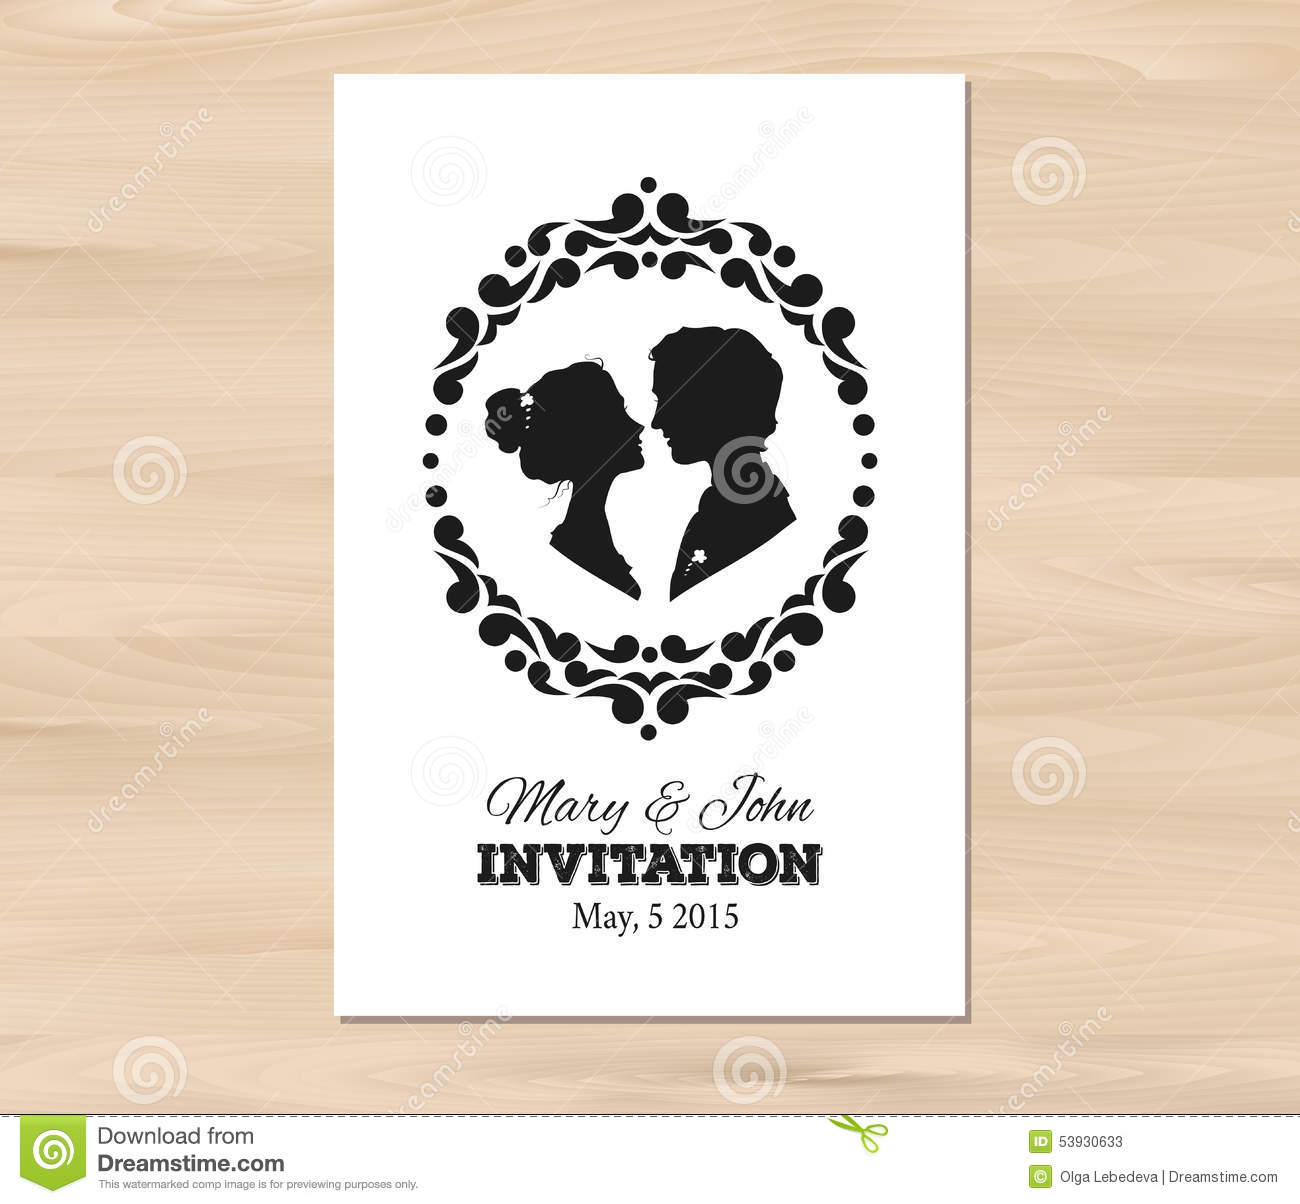 Vector Wedding Invitation With Profile Silhouettes Stock Vector Illustration Of Profile Decoration 53930633